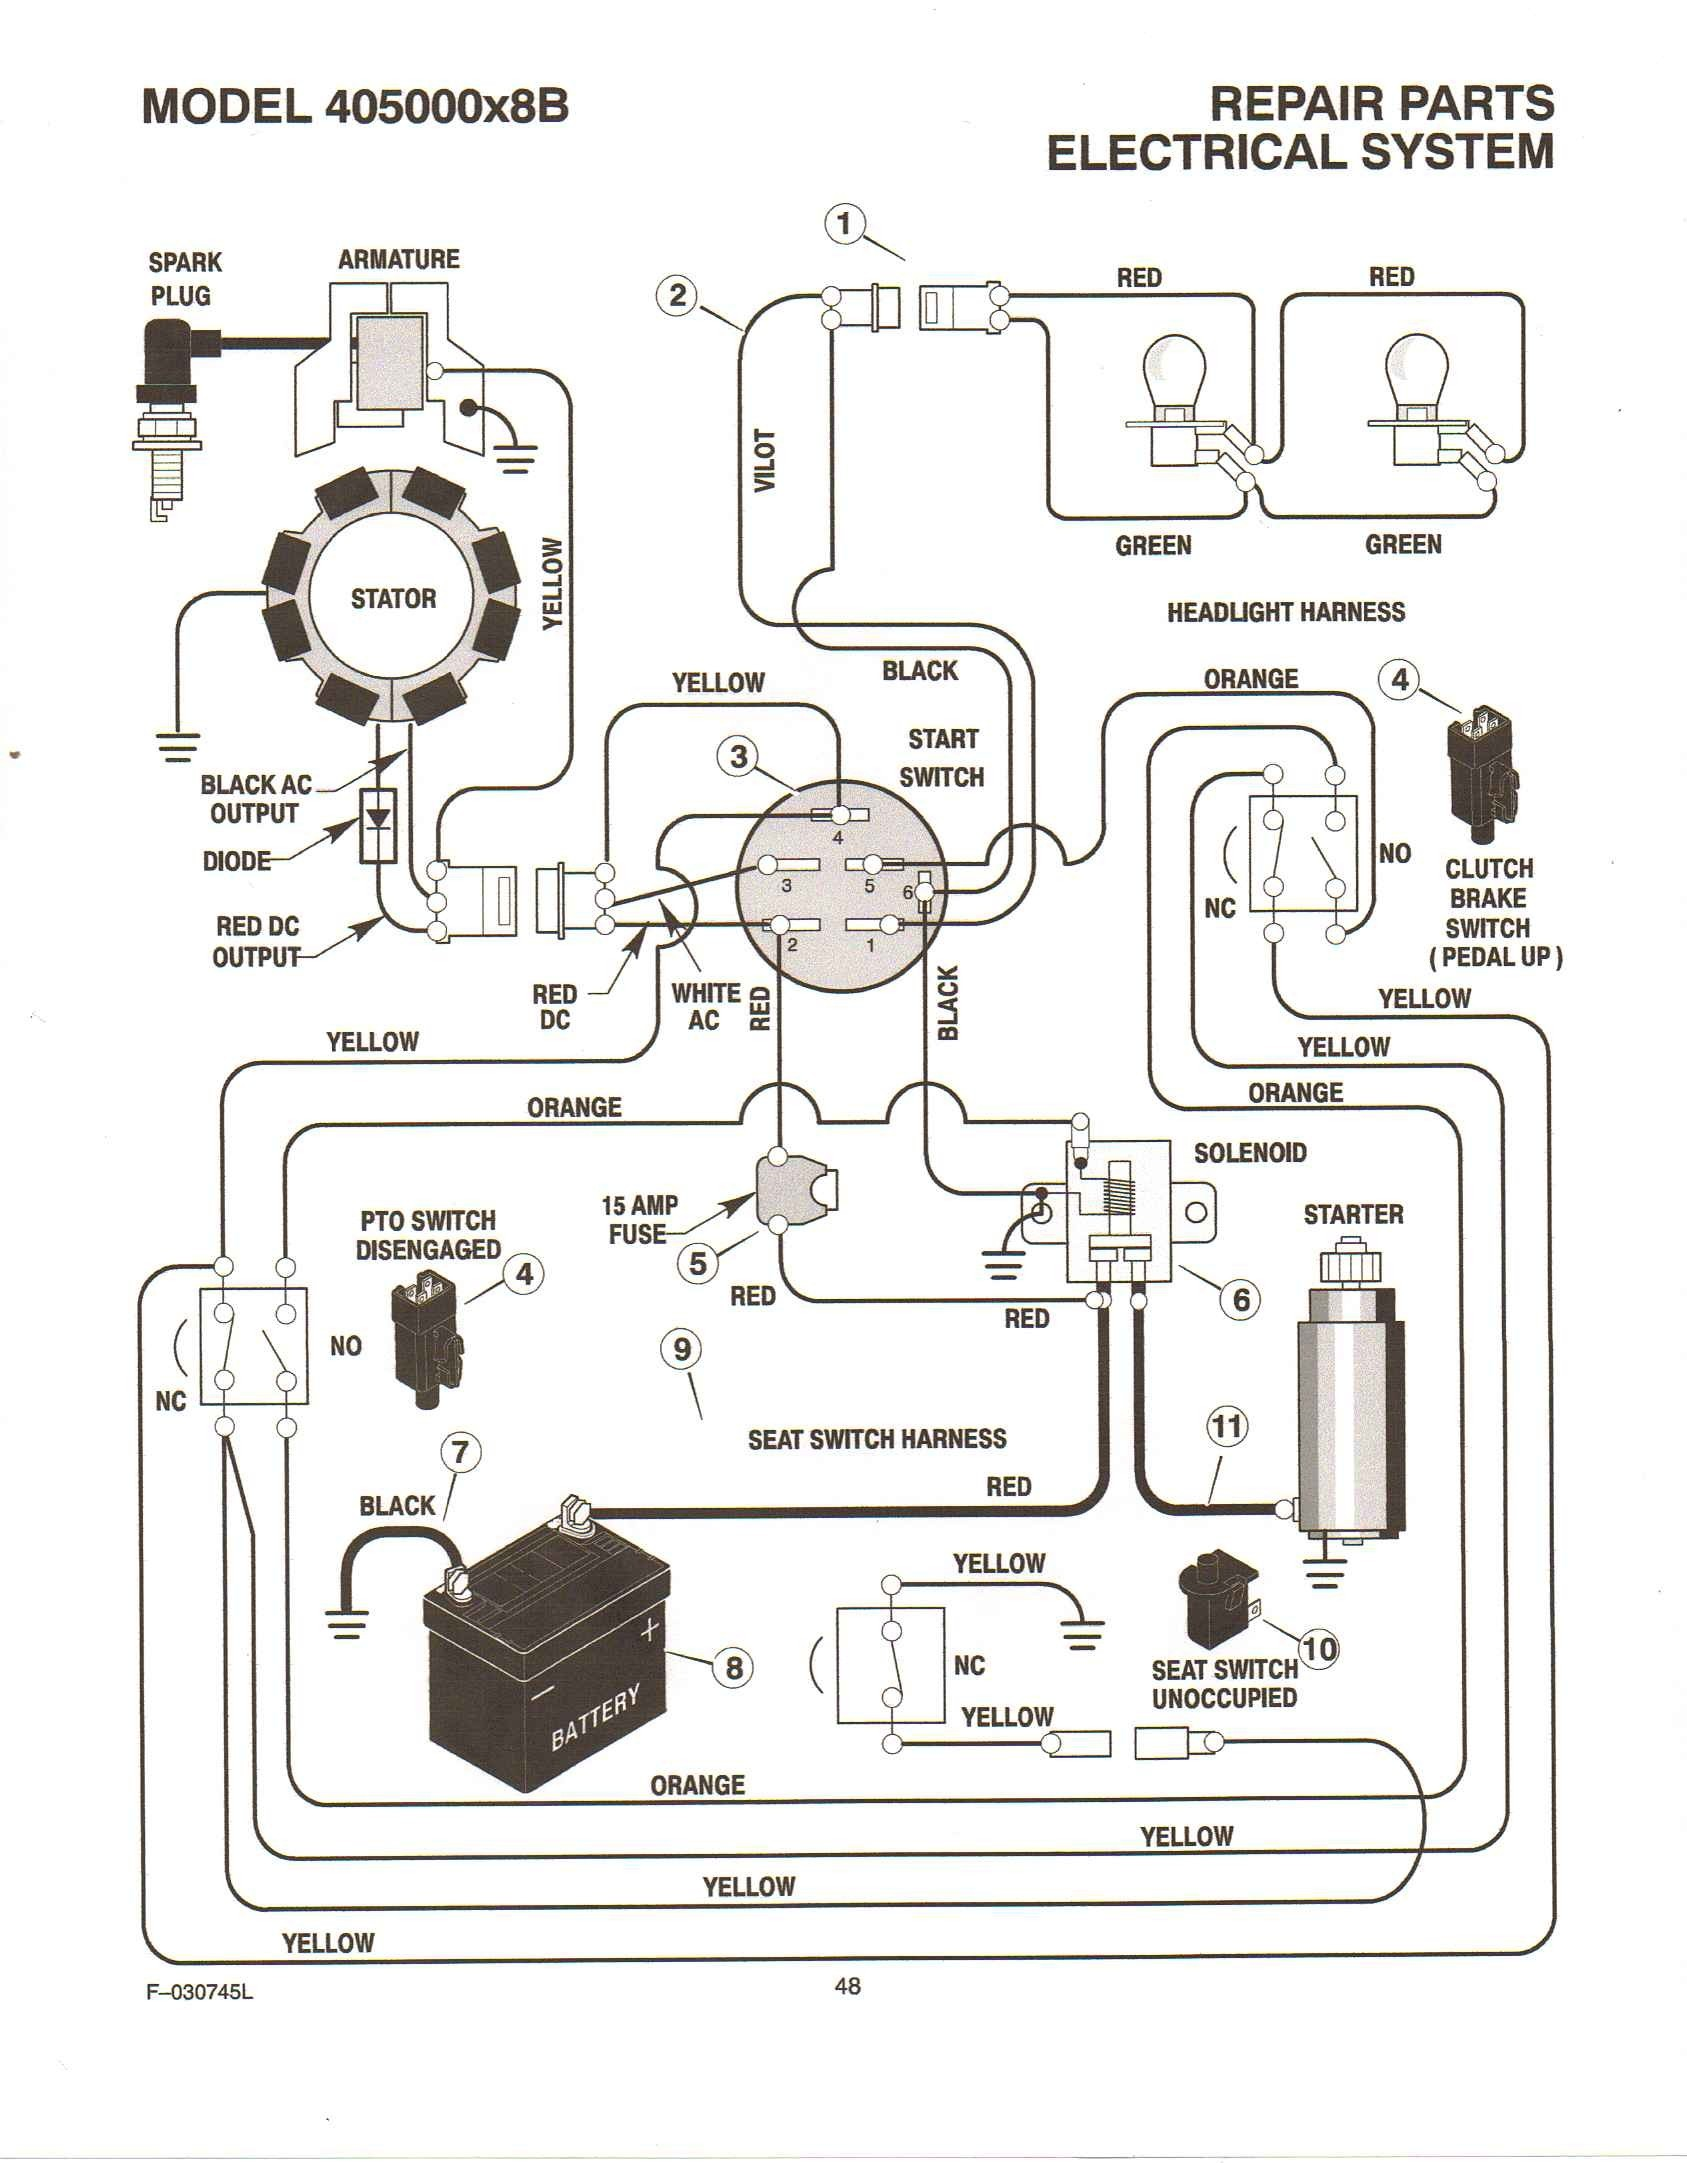 Starter solenoid Wiring Diagram Manual Inspirationa Epic Wiring Diagram for  Kohler Engine 58 for Starter Motor